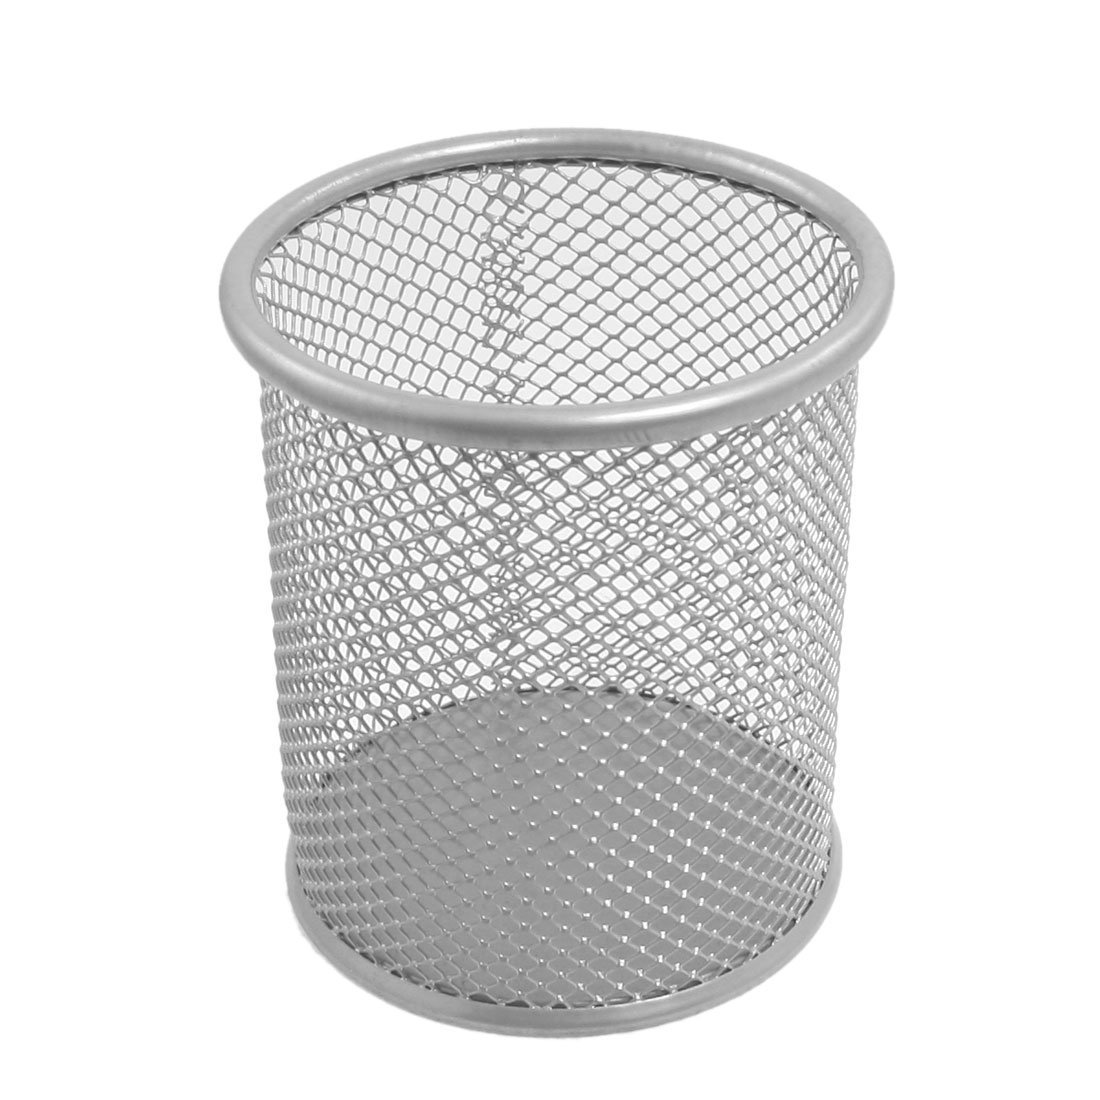 SOSW New Round Shaped Mesh Metal Brush Pot Pen Holder Penholder for ...